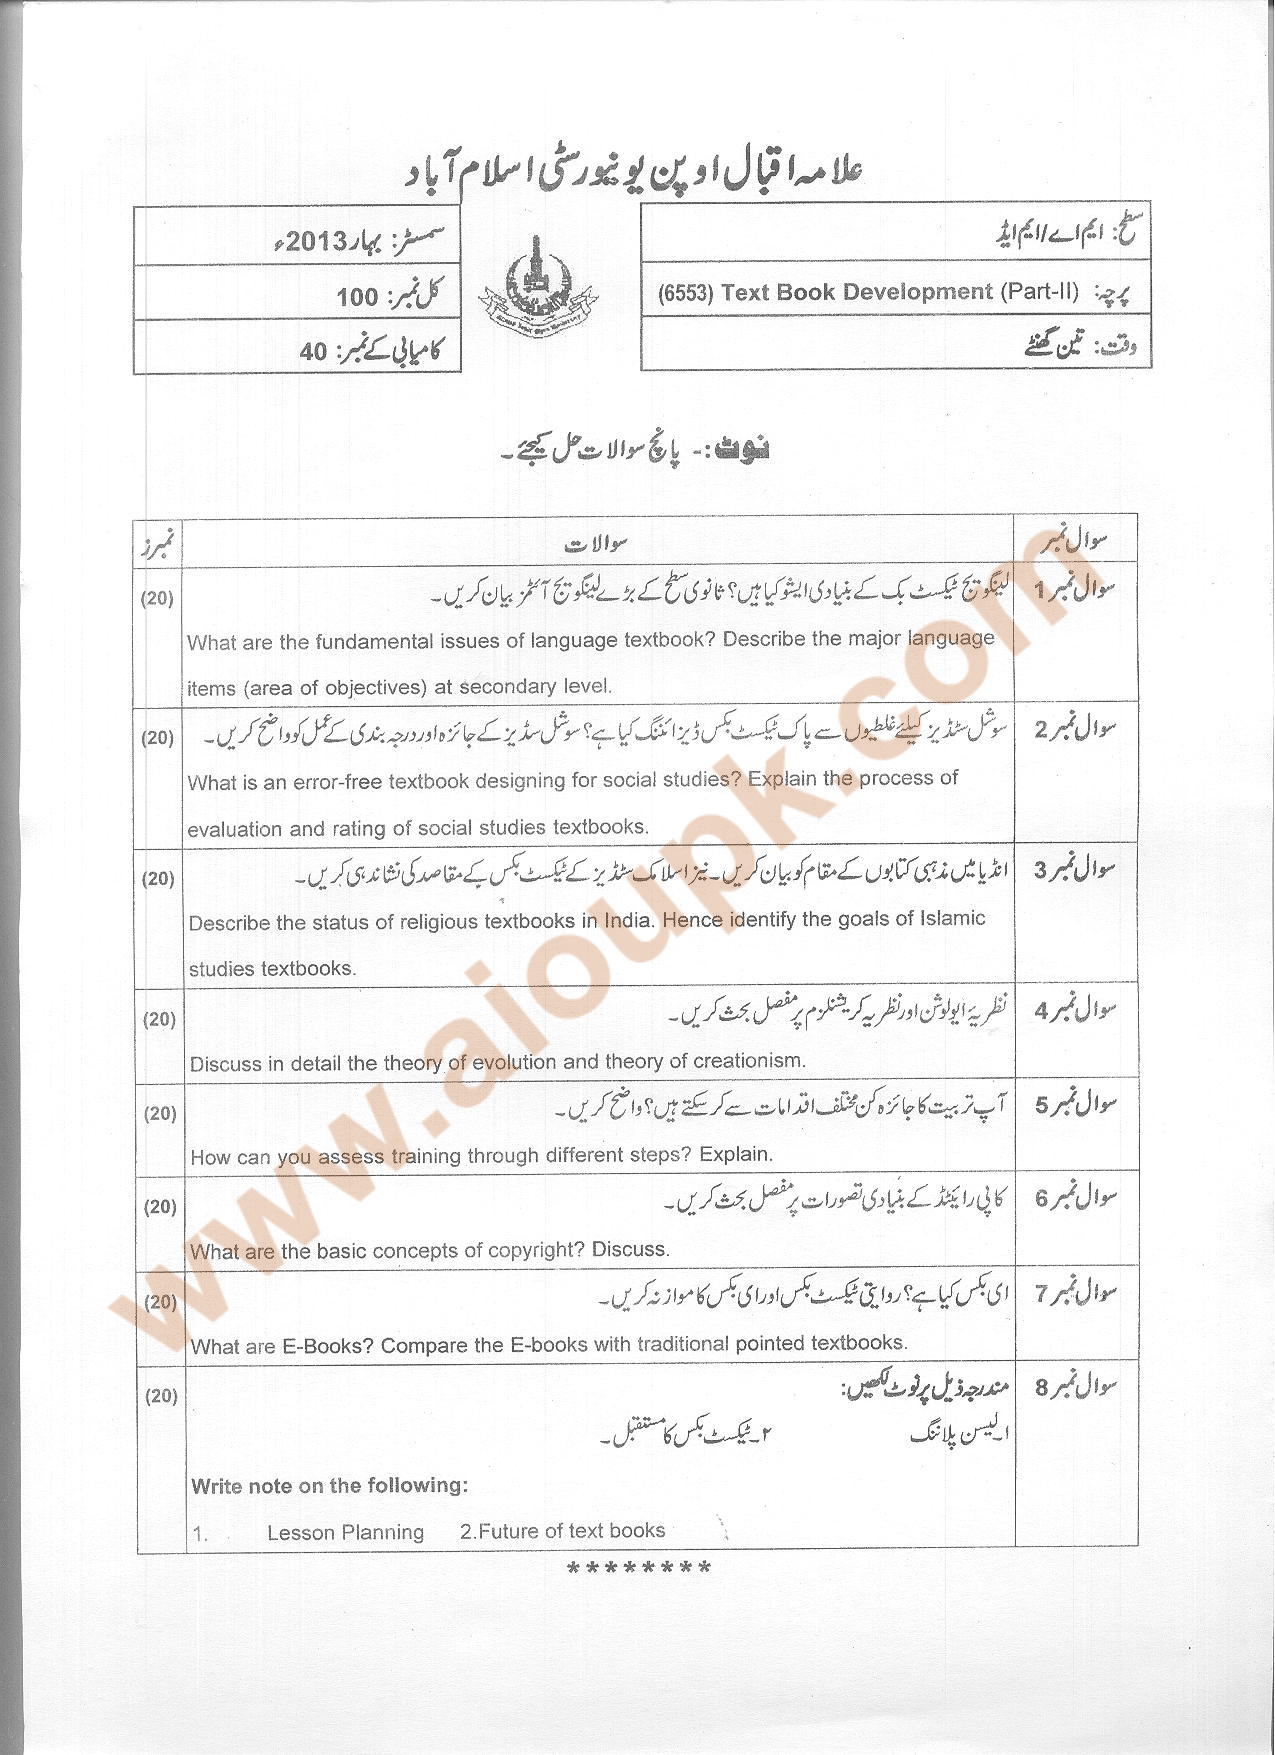 Text Book Development Part 2 Code Old Papers Of Aiou